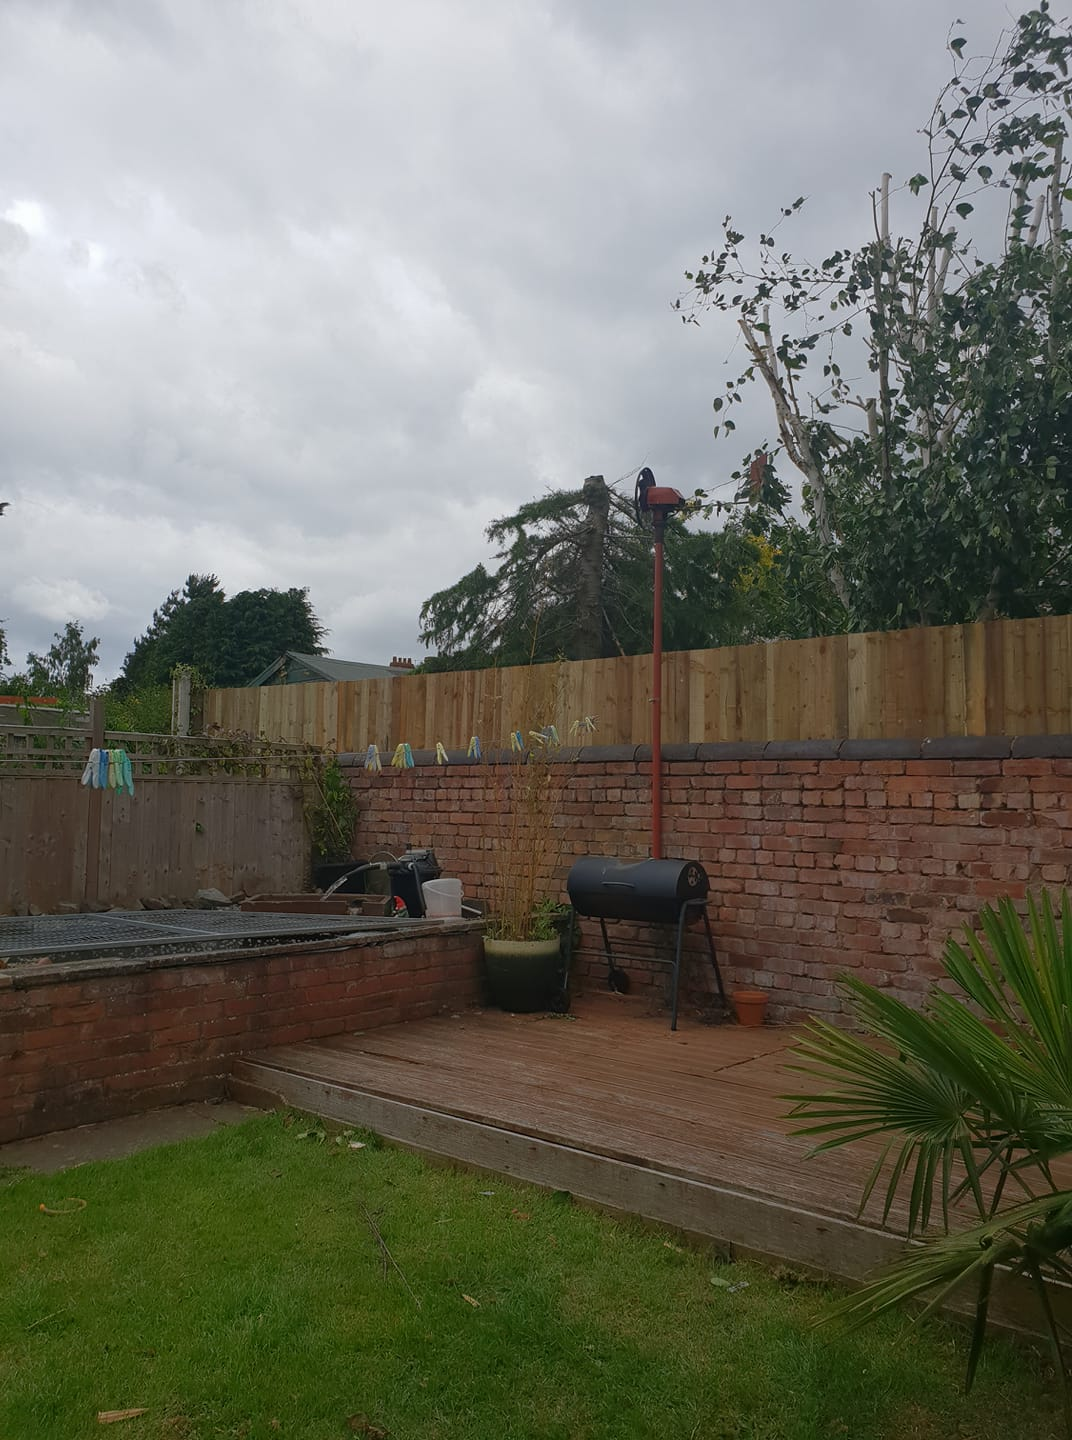 Here's a small fencing job carried out in Northop Hall.: Local Domestic & Commercial Cleaning Services Contractors Near Me in Flintshire, Denbighshire, Wrexham, Cheshire, Wirral, Chester, Liverpool, Cheshire, Shotton, Connah's Quay, Queensferry, Hawarden, Ewloe, Drury, Buckley, Mynydd Isa, Northop, Northop Hall, Mold, Garden City, Saughall, Blacon, Chester, Pentre, Sandycroft, Mancot, Sychdyn, Alltami, Pen Y Ffordd, Higher Kinnerton, Deeside, Chester, Mold and Nearby Areas.